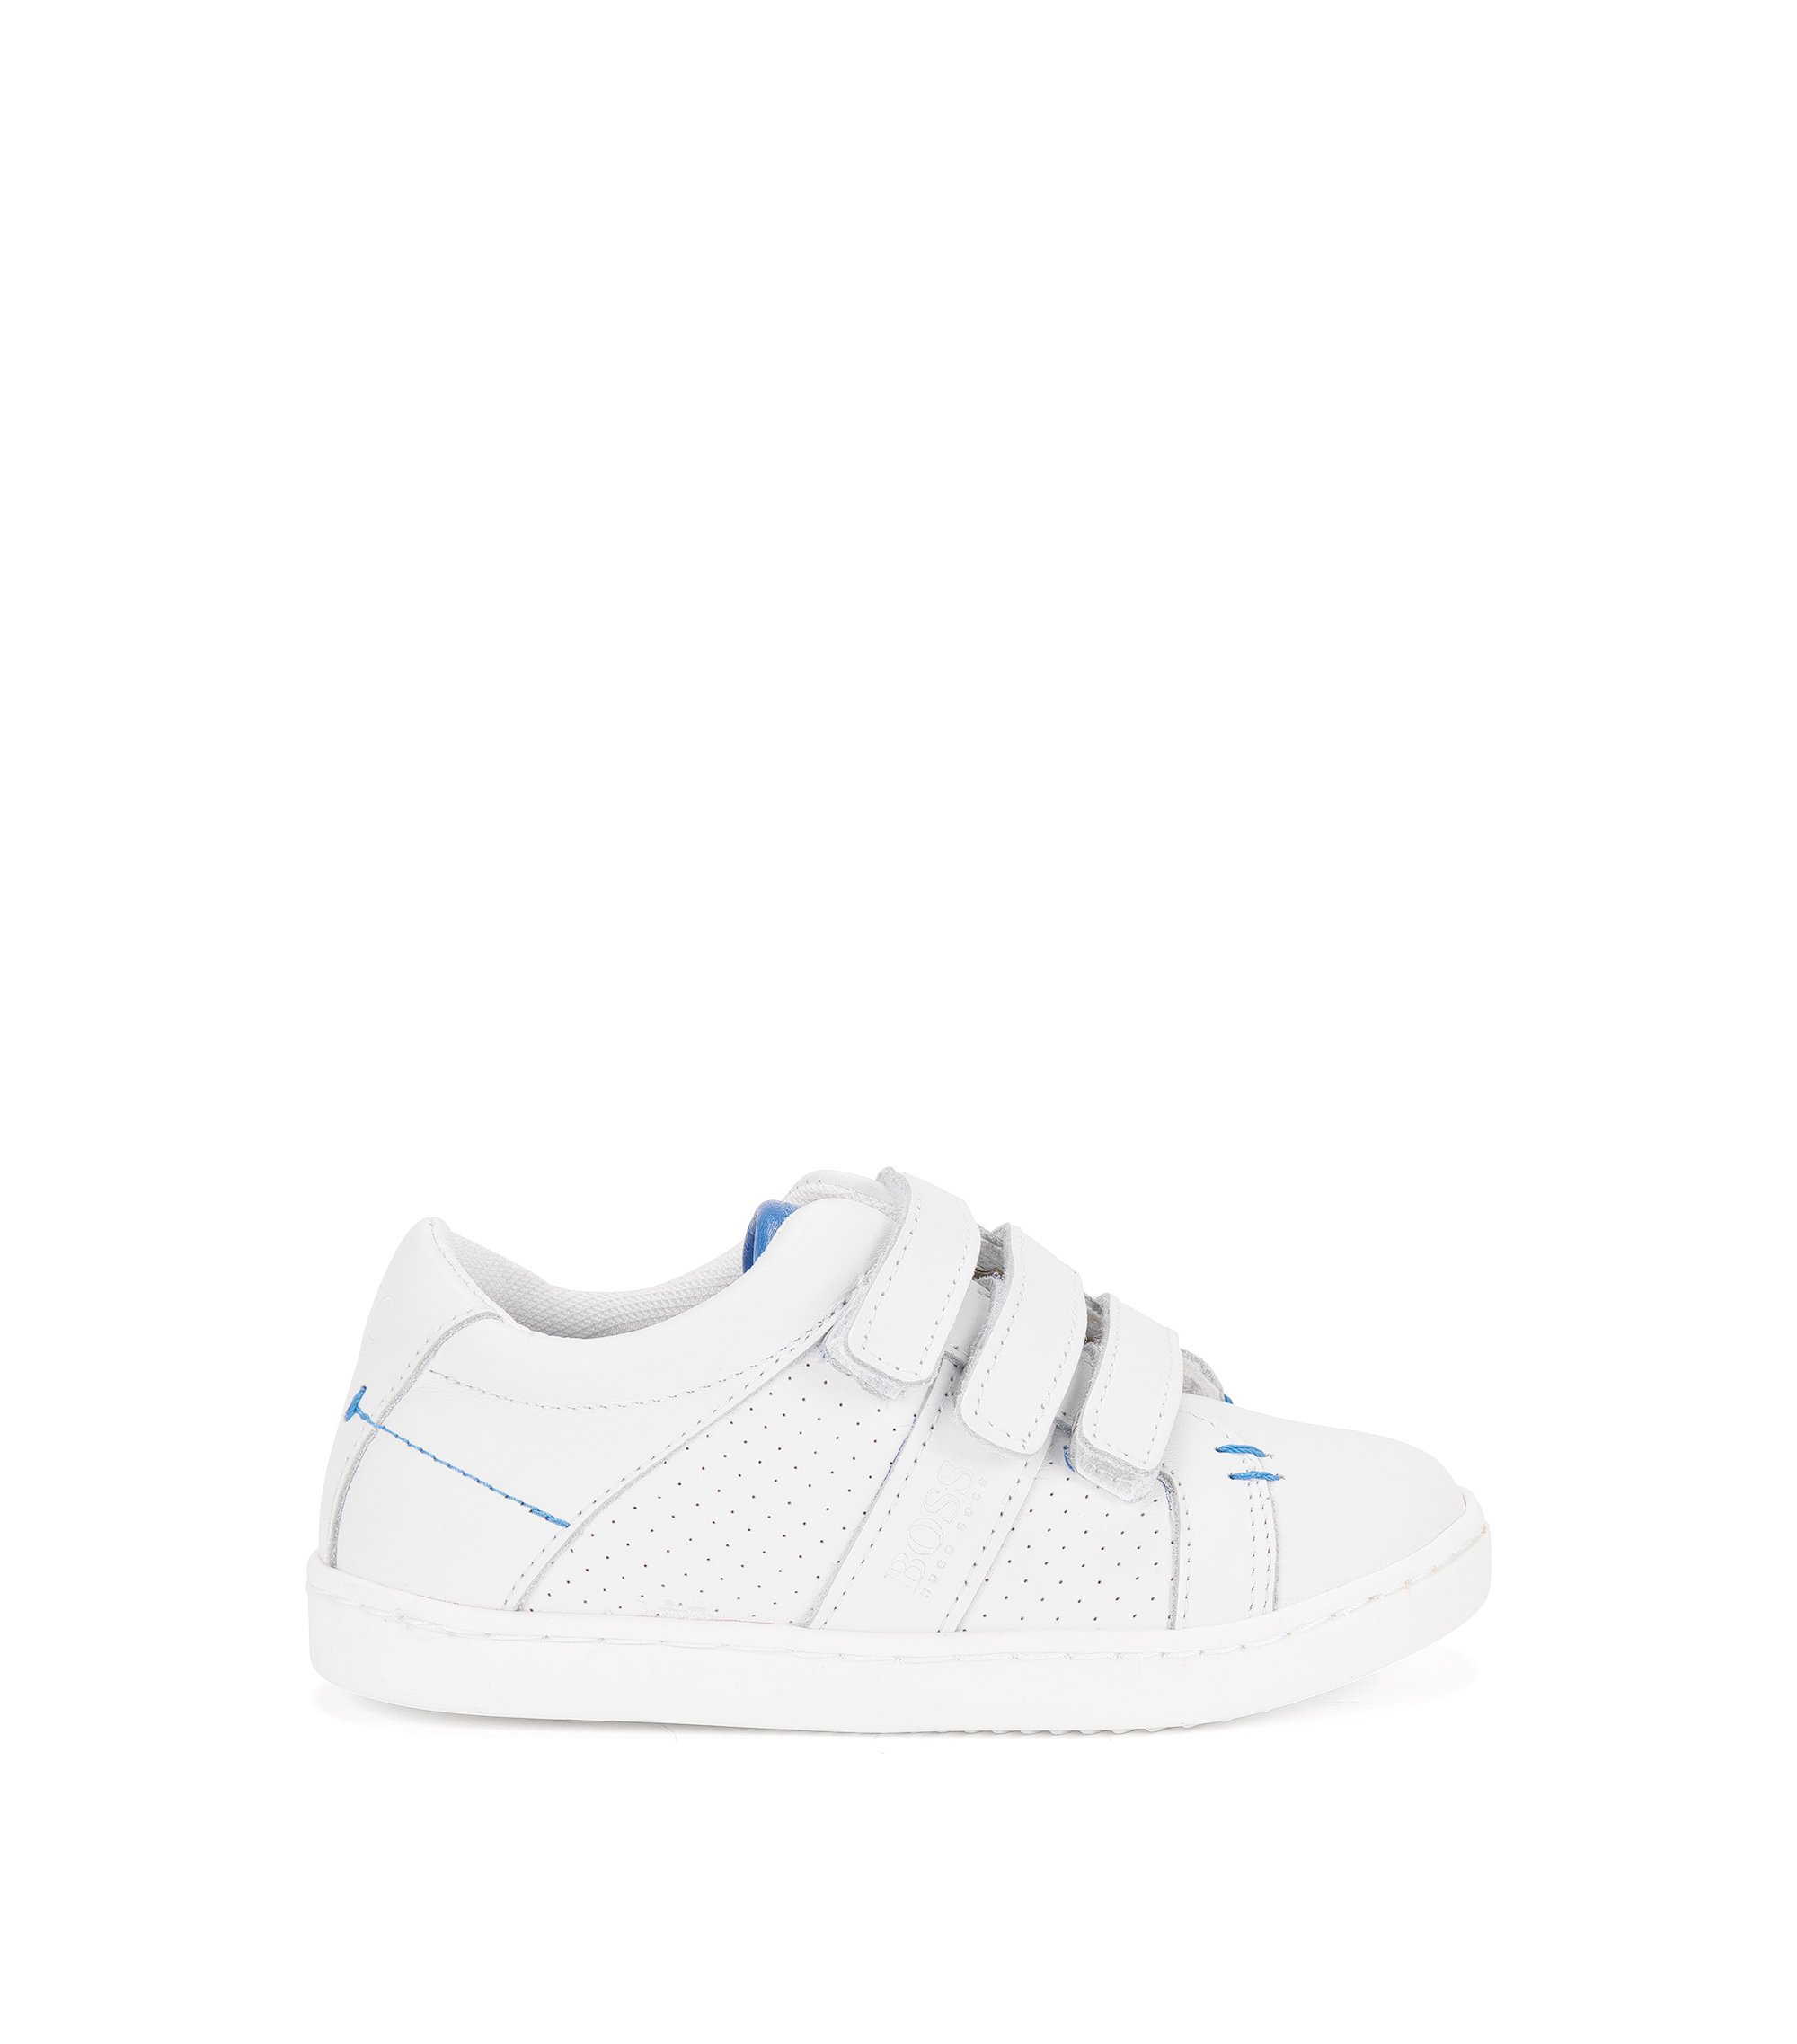 'J29114' | Leather Sneakers, White